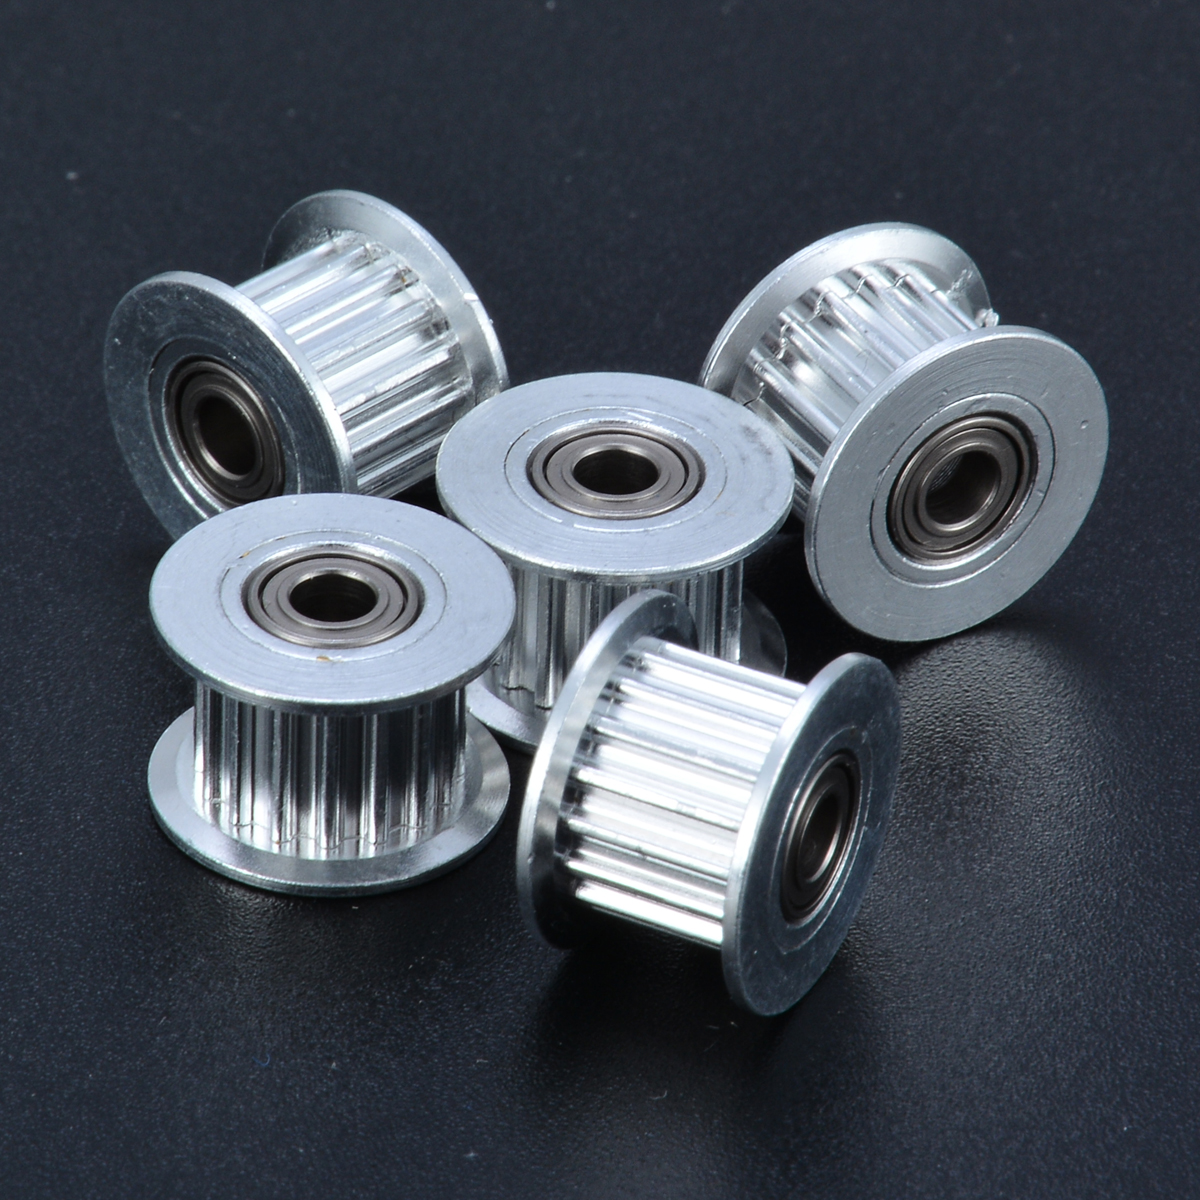 5pcs 3D Printer Timing Pulley Belt GT2 16T Timing Pulley 3mm Bore Bearing 6mm Belt For 3D Printer Accessory